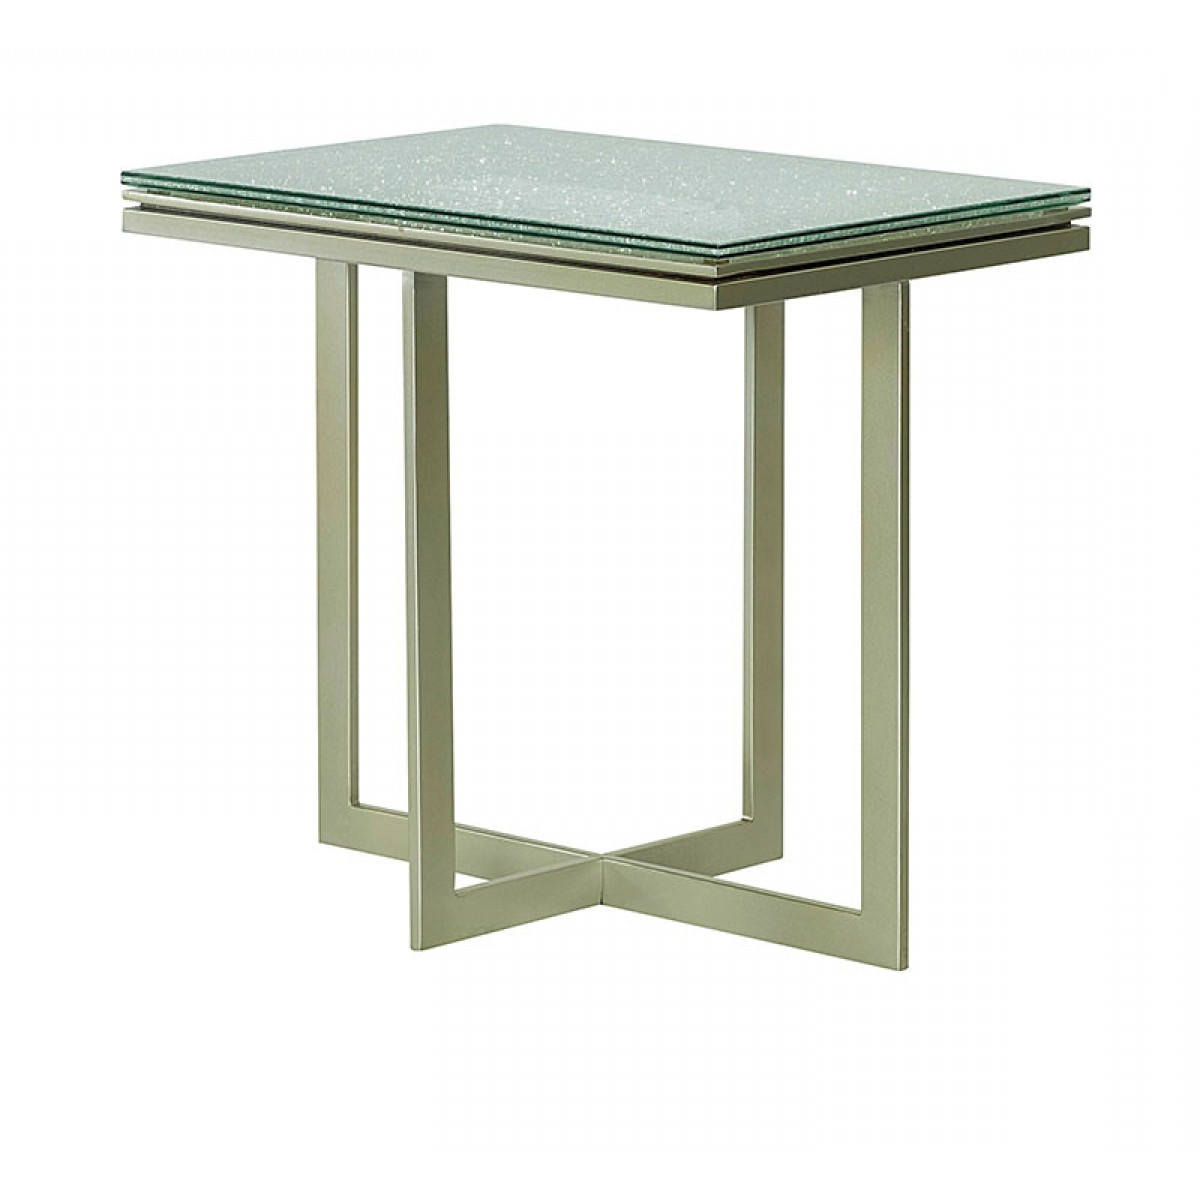 Stratus Cocktail Tables Intended For Current Hammary Stratus Accent Table (View 11 of 20)